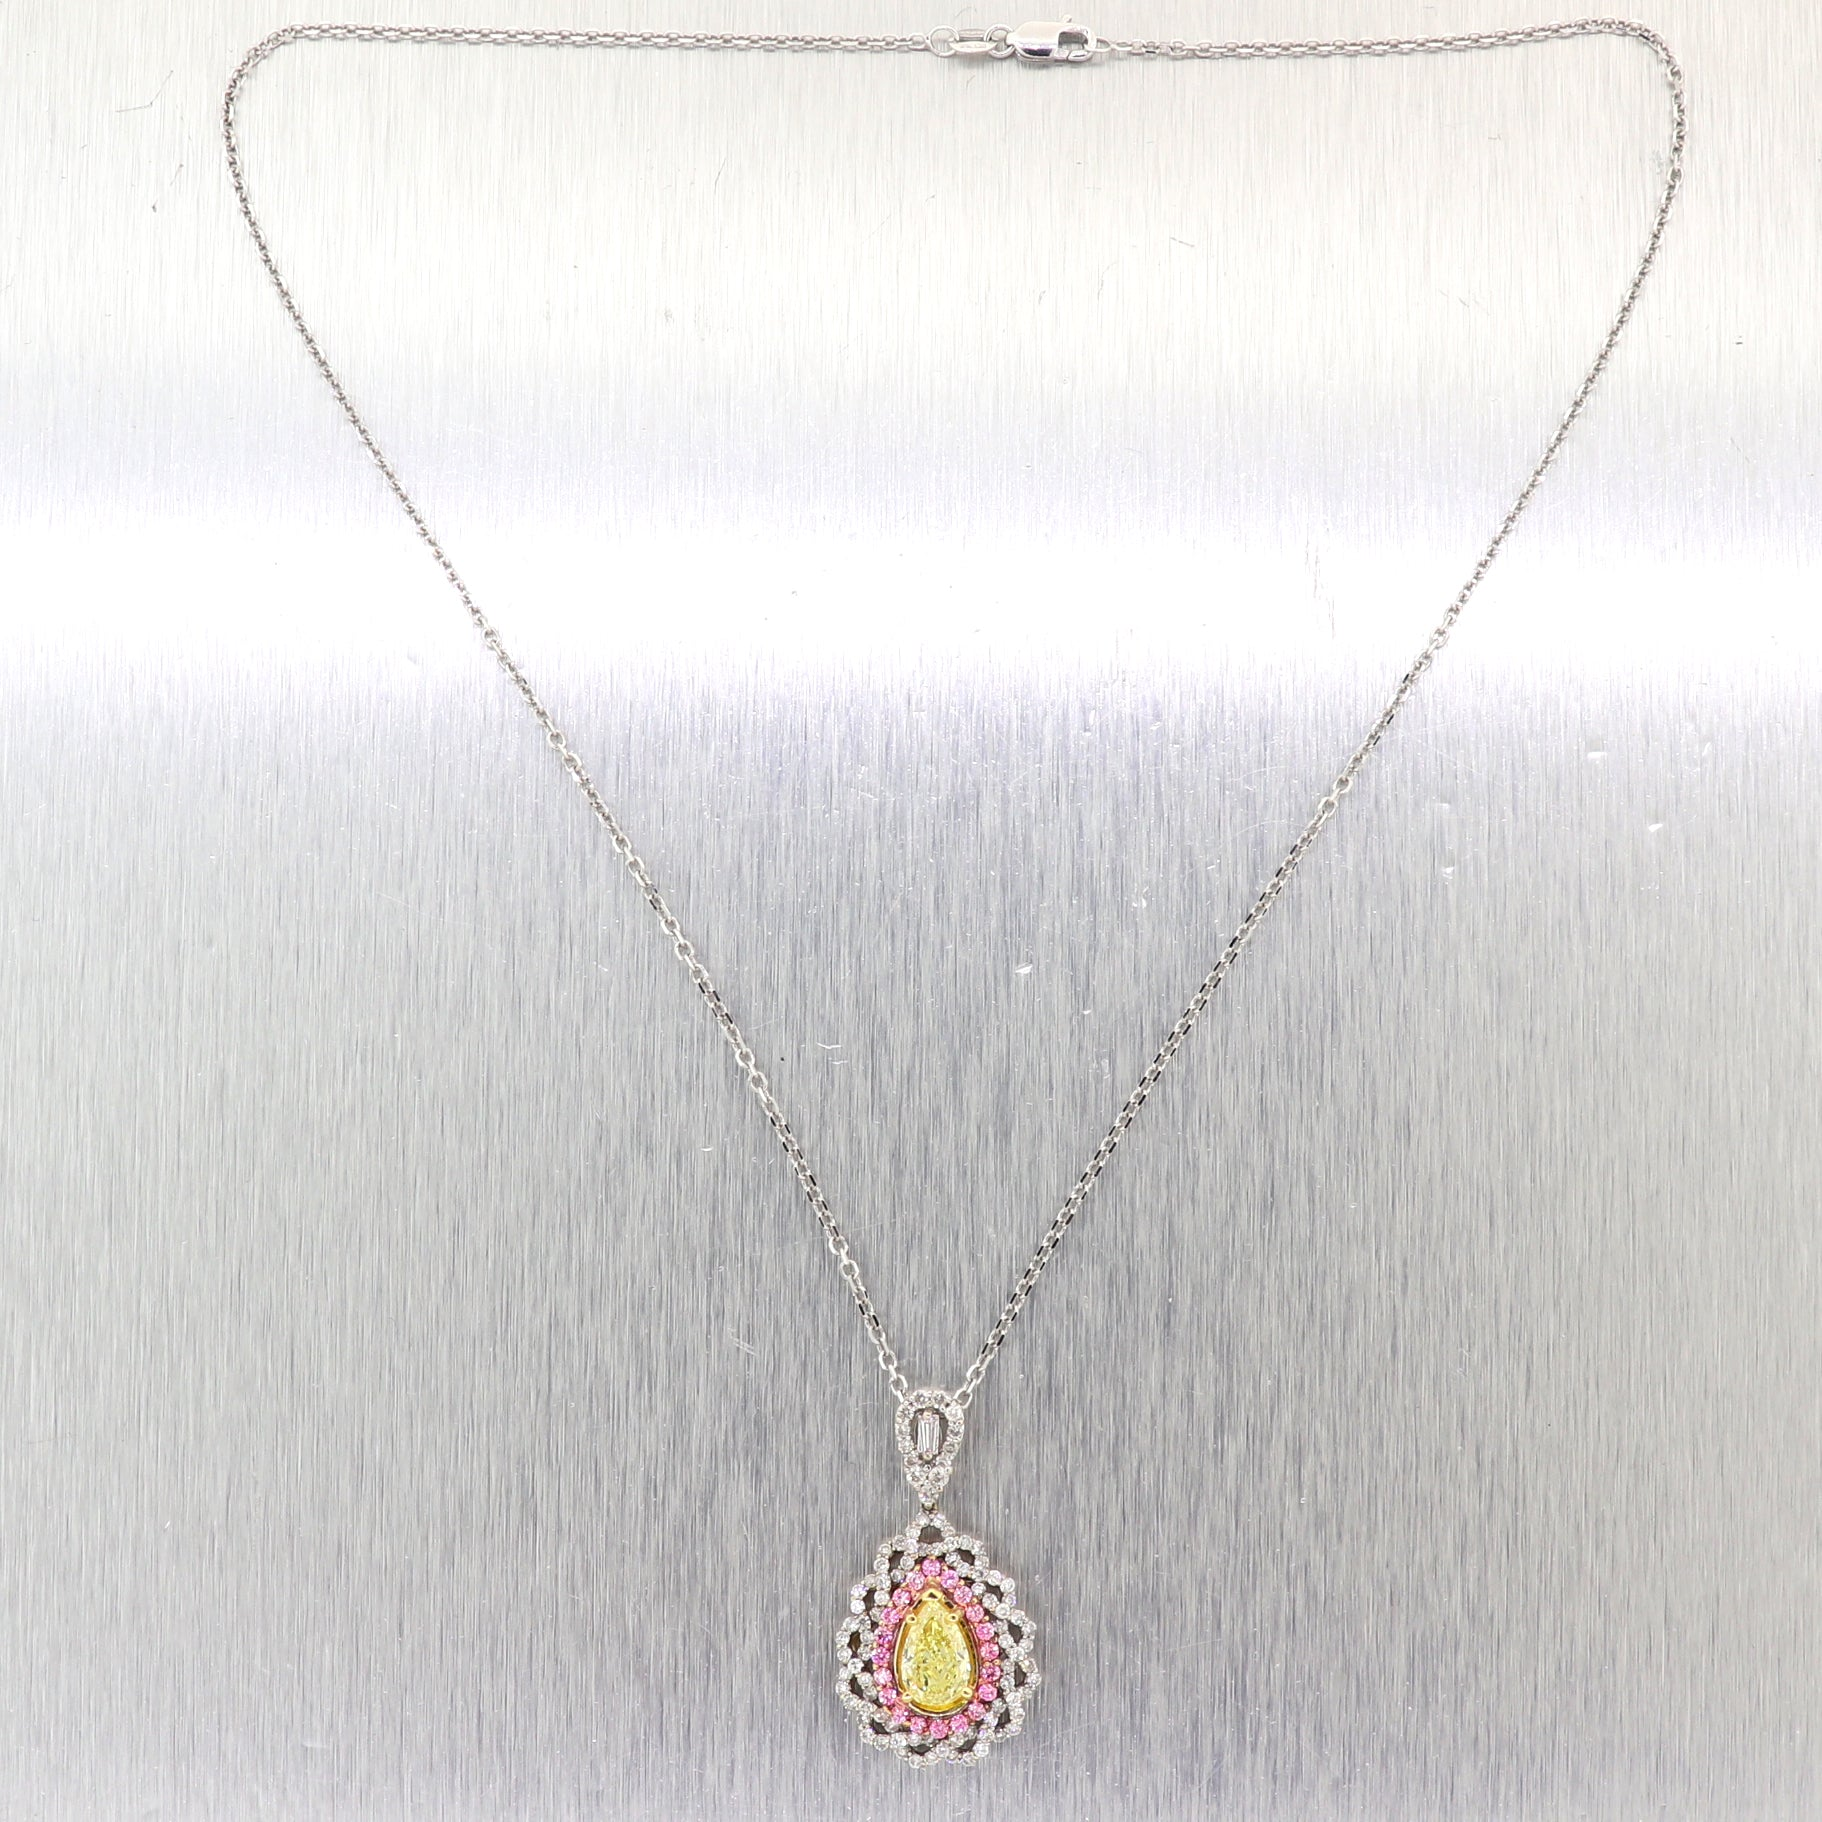 "GIA 1.28ct Pear Cut Yellow Diamond 18k White Gold 2.78ctw Diamond 16"" Necklace"